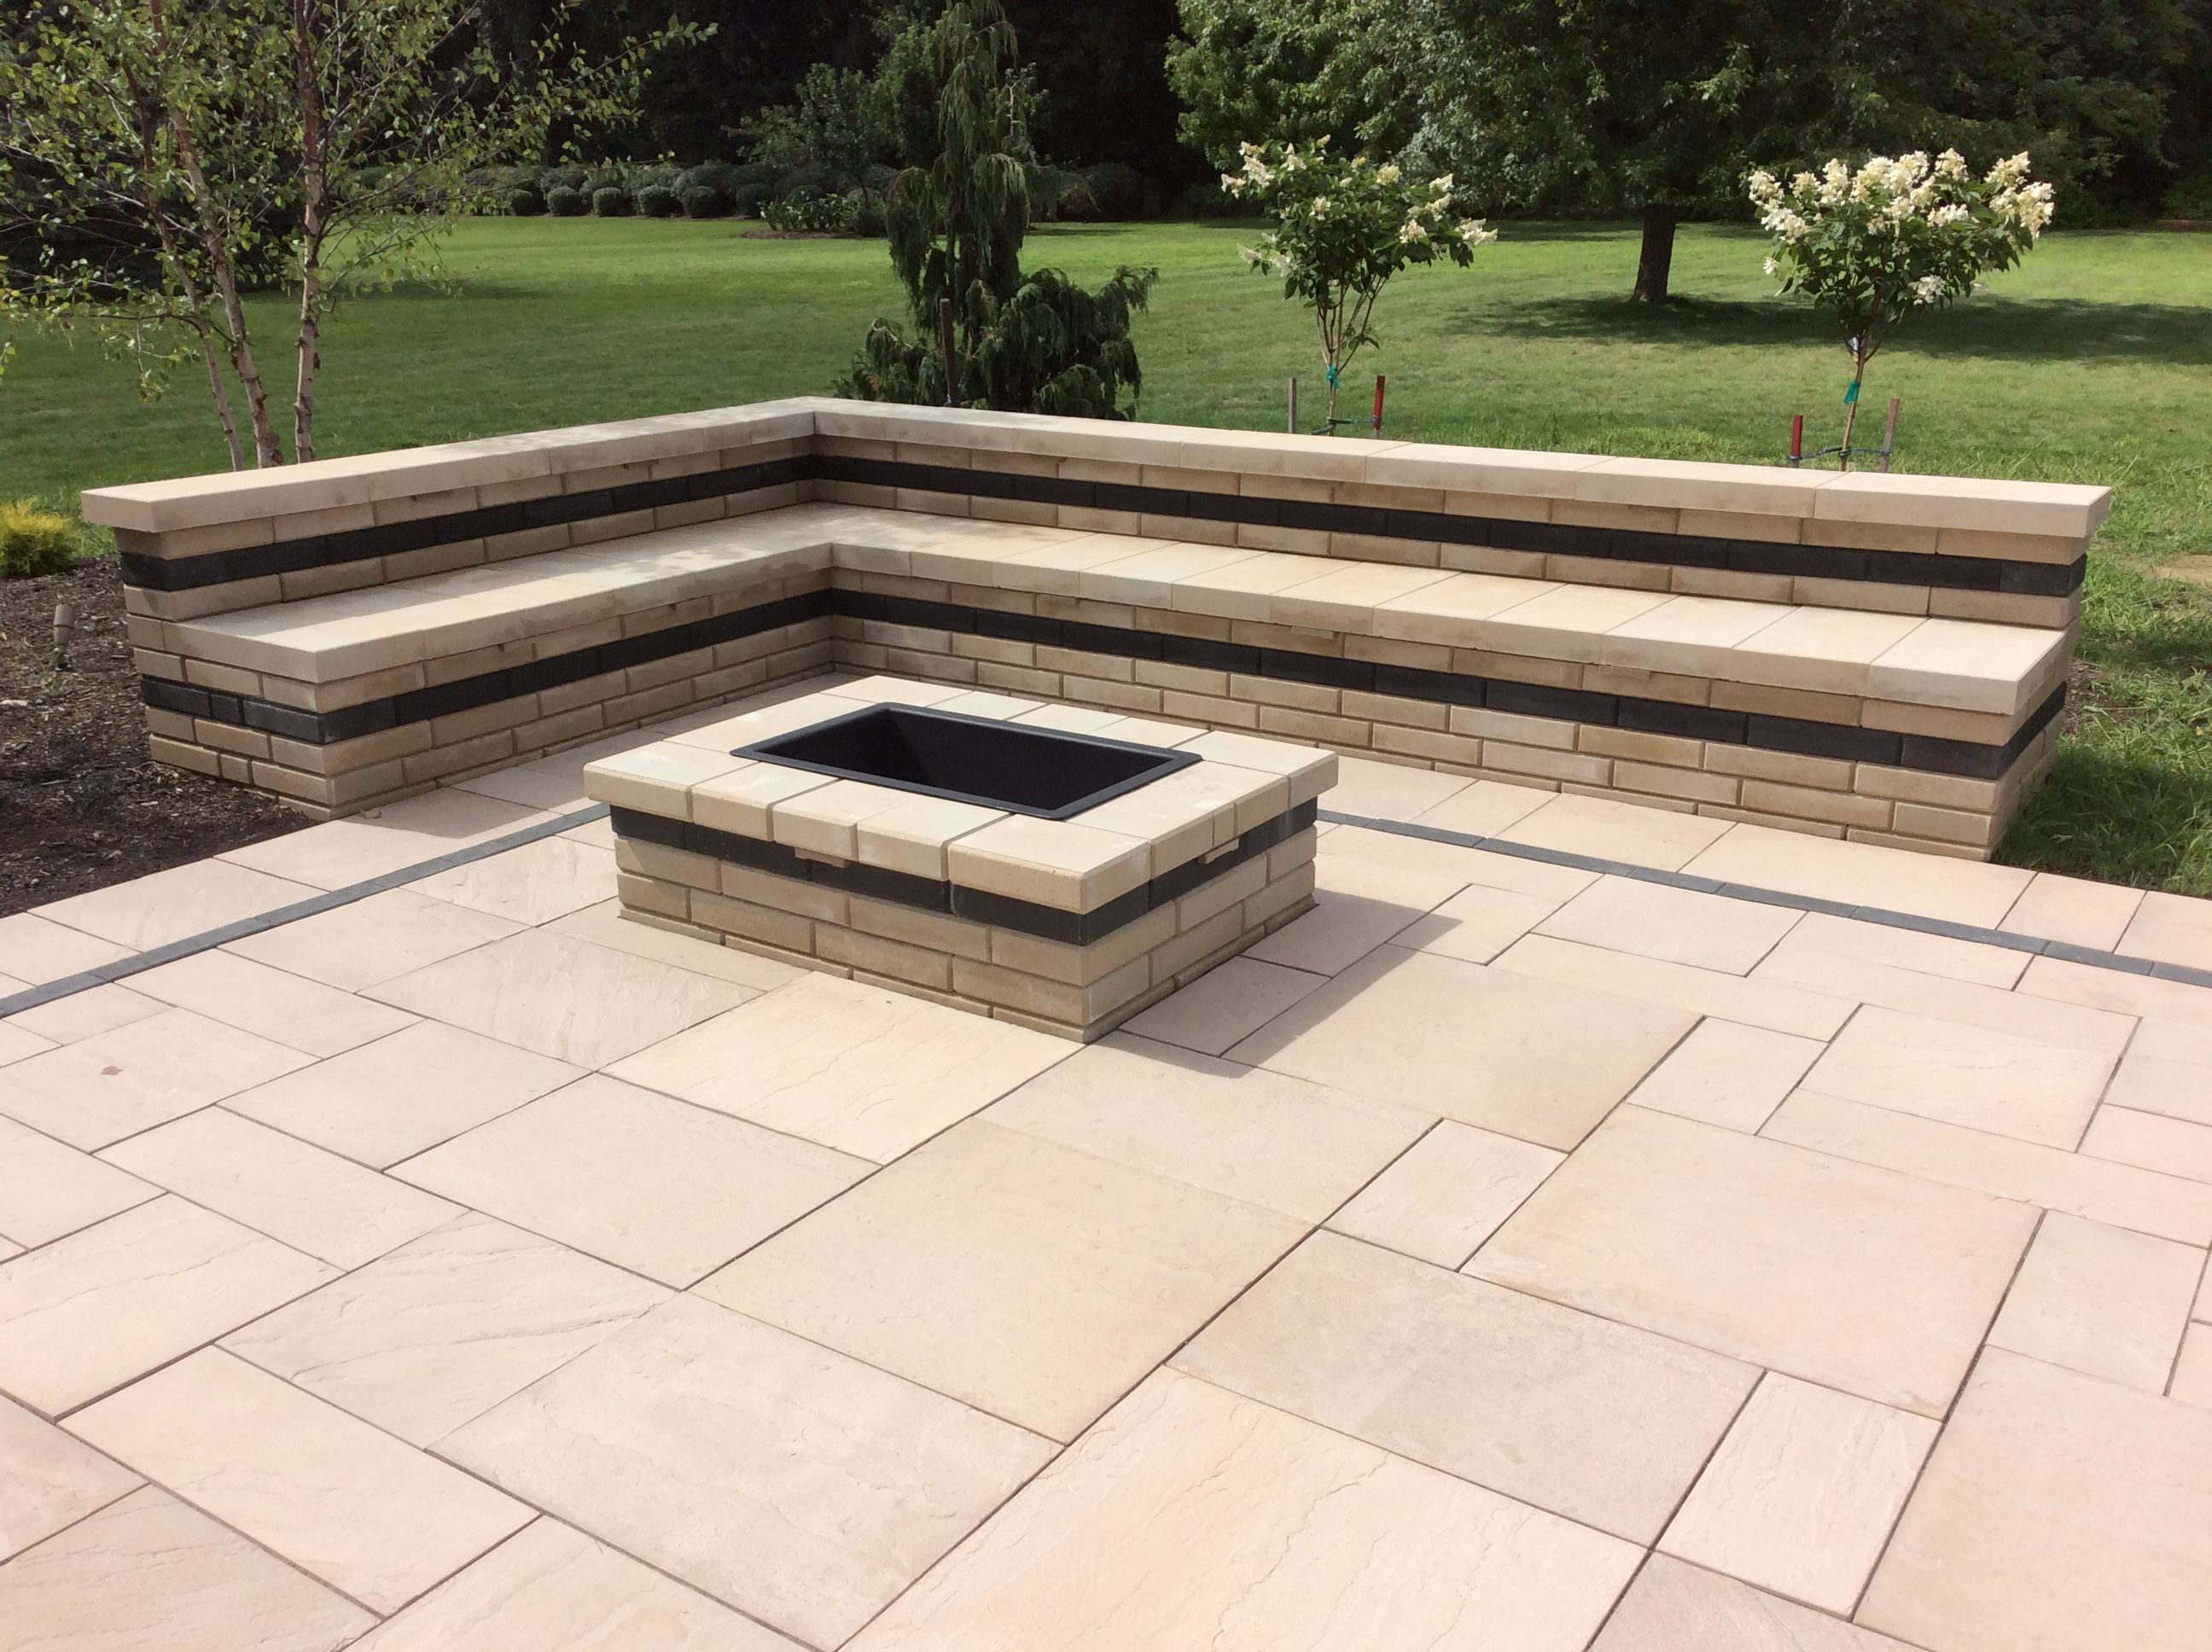 The Durability Of A Flagstone Patio With Images Paver Patio